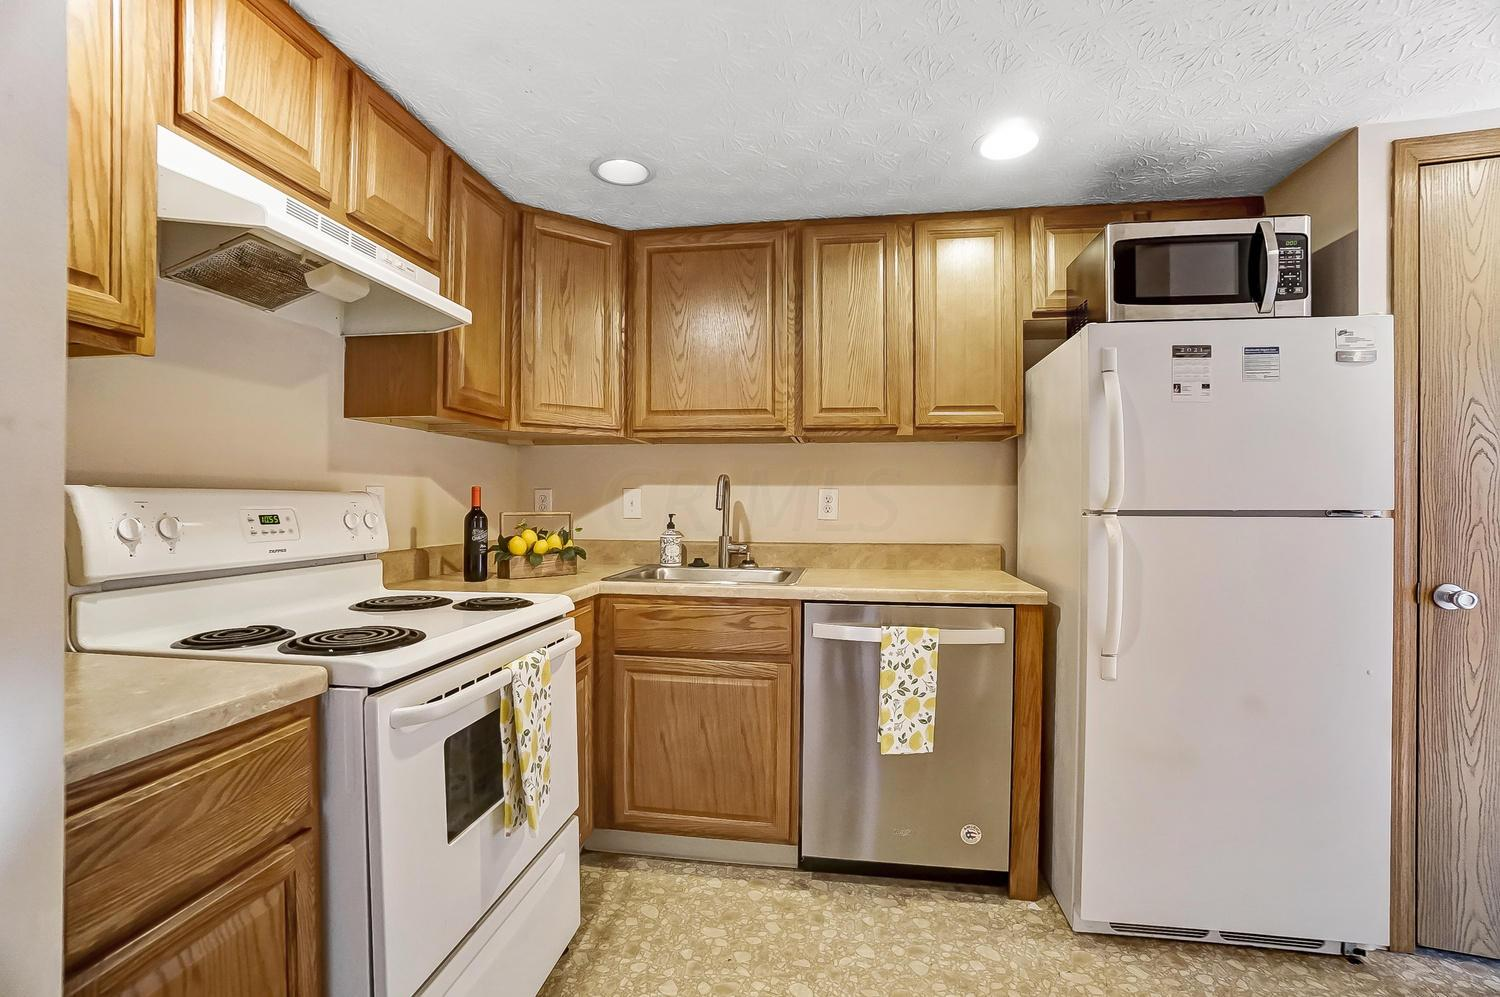 5428 Worthington Forest Place, Columbus, Ohio 43229, 2 Bedrooms Bedrooms, ,2 BathroomsBathrooms,Residential,For Sale,Worthington Forest,221001155